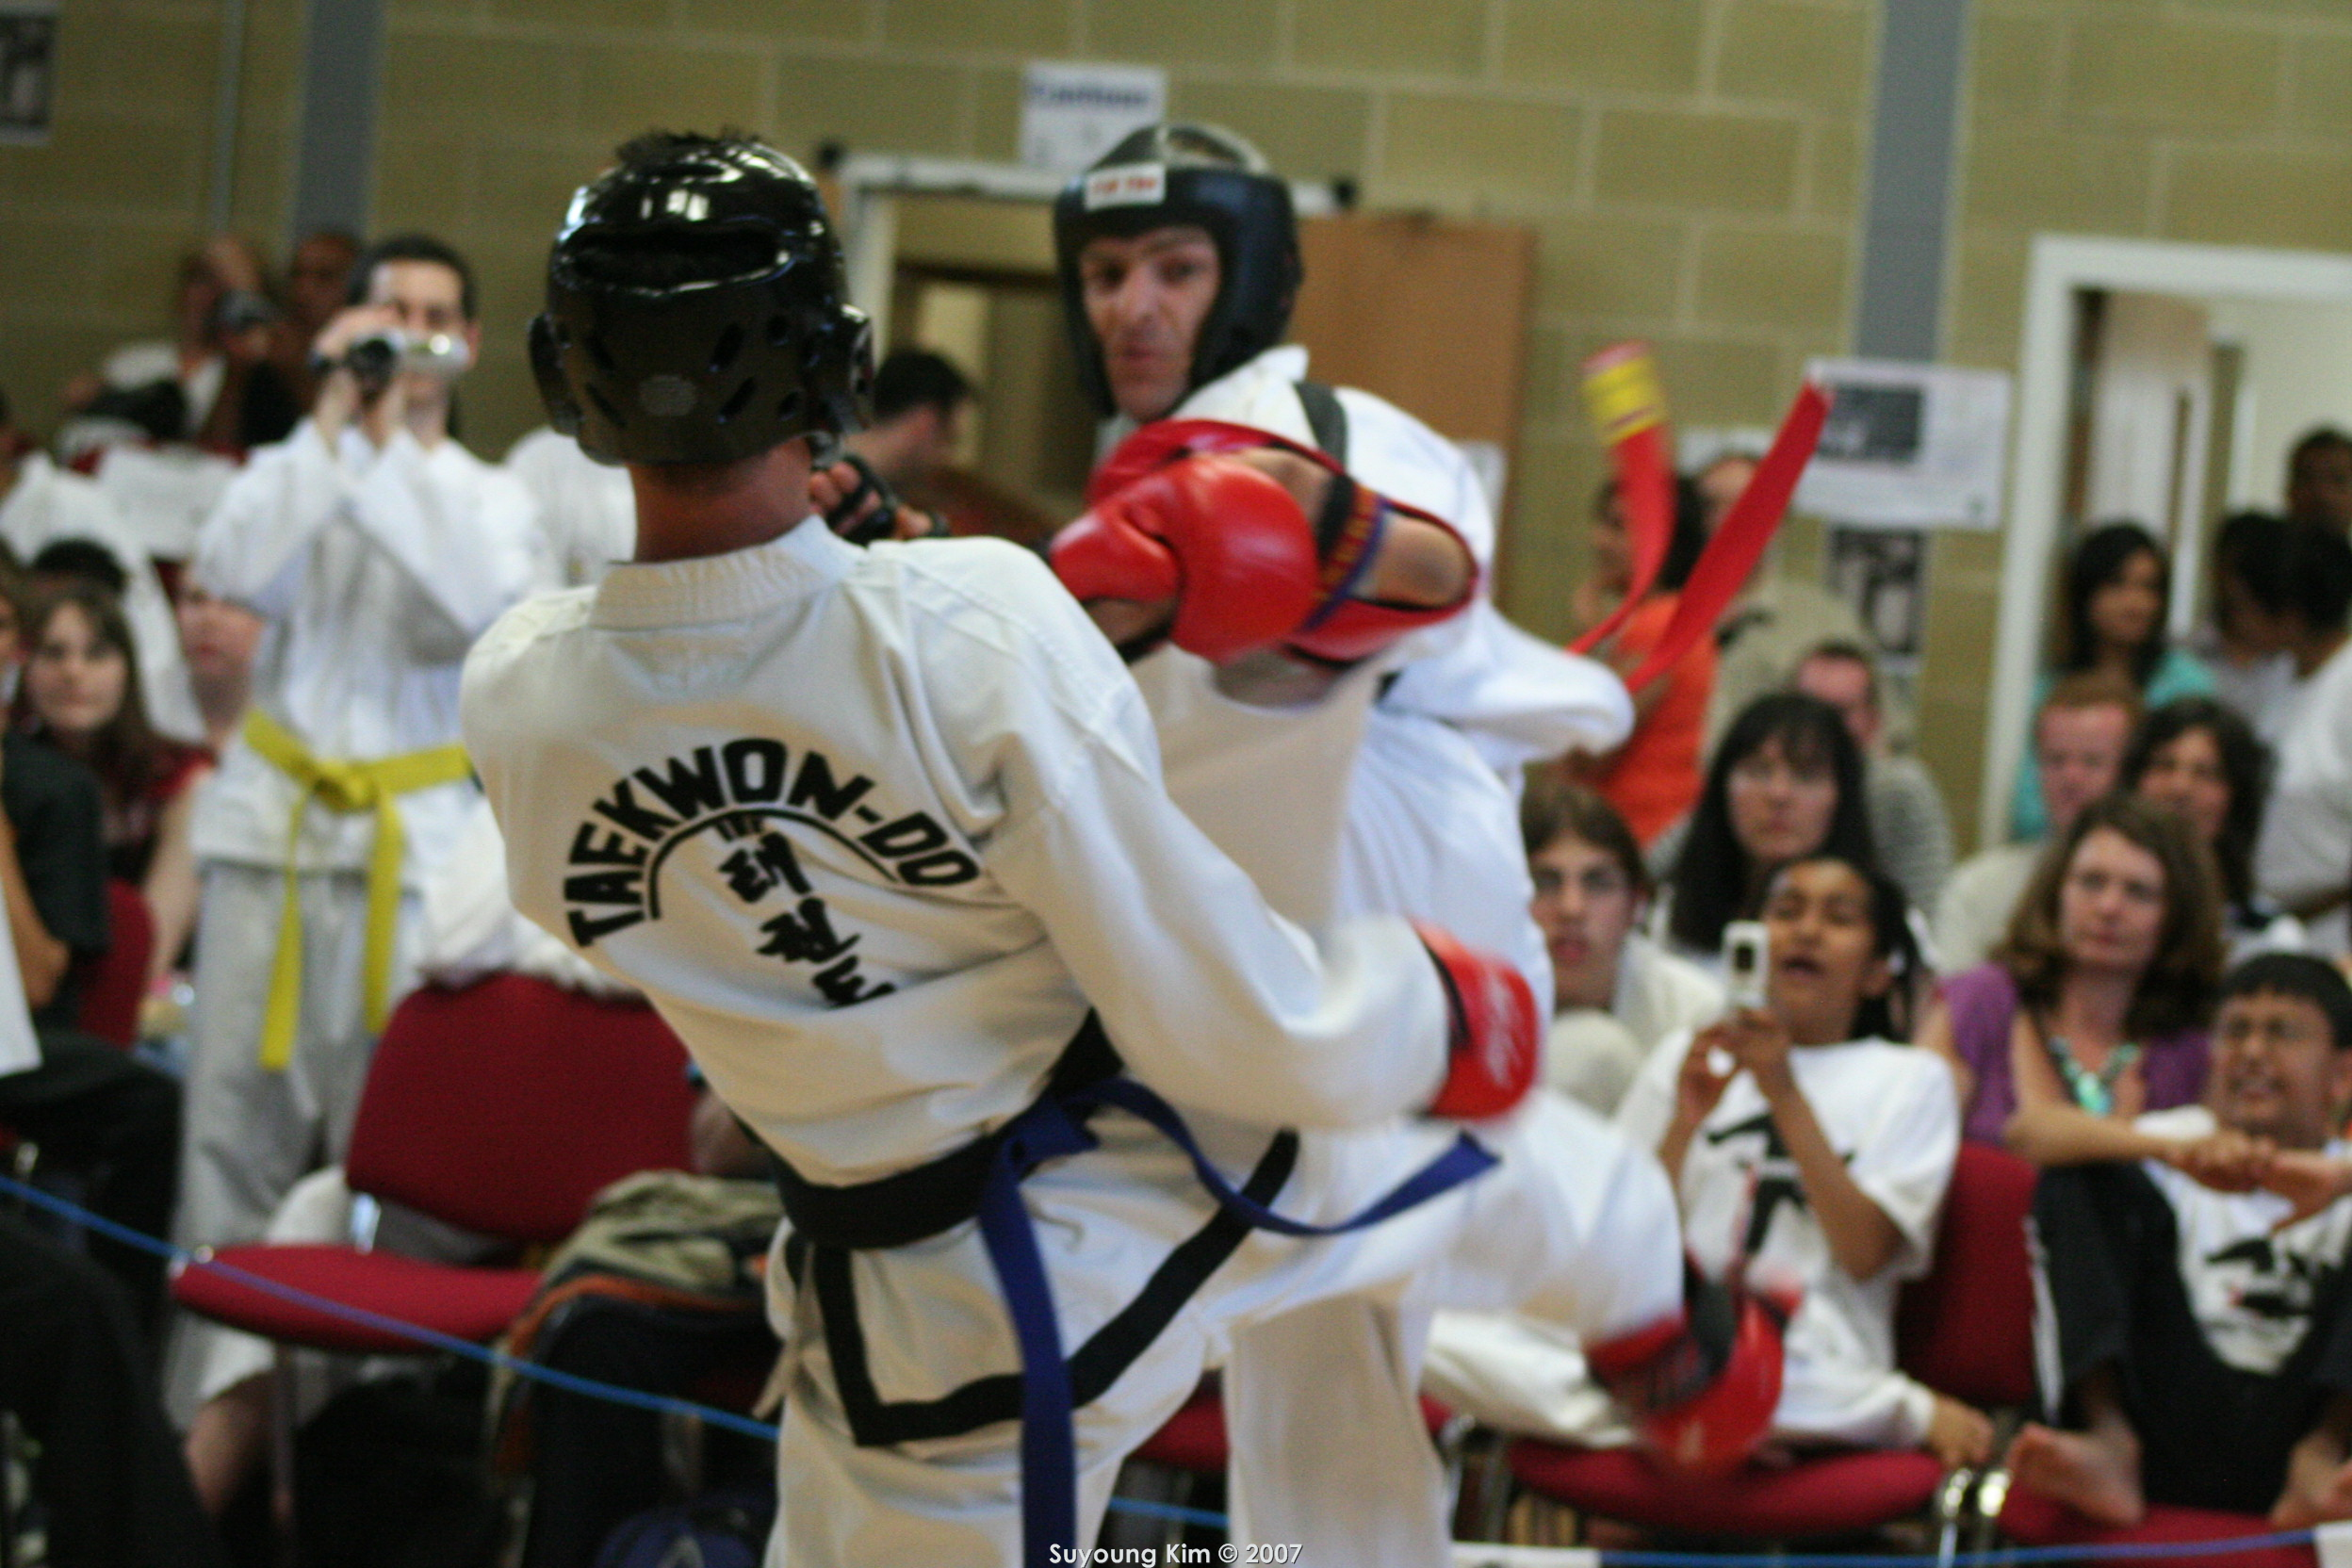 Mr Avis, Sparring, 2007